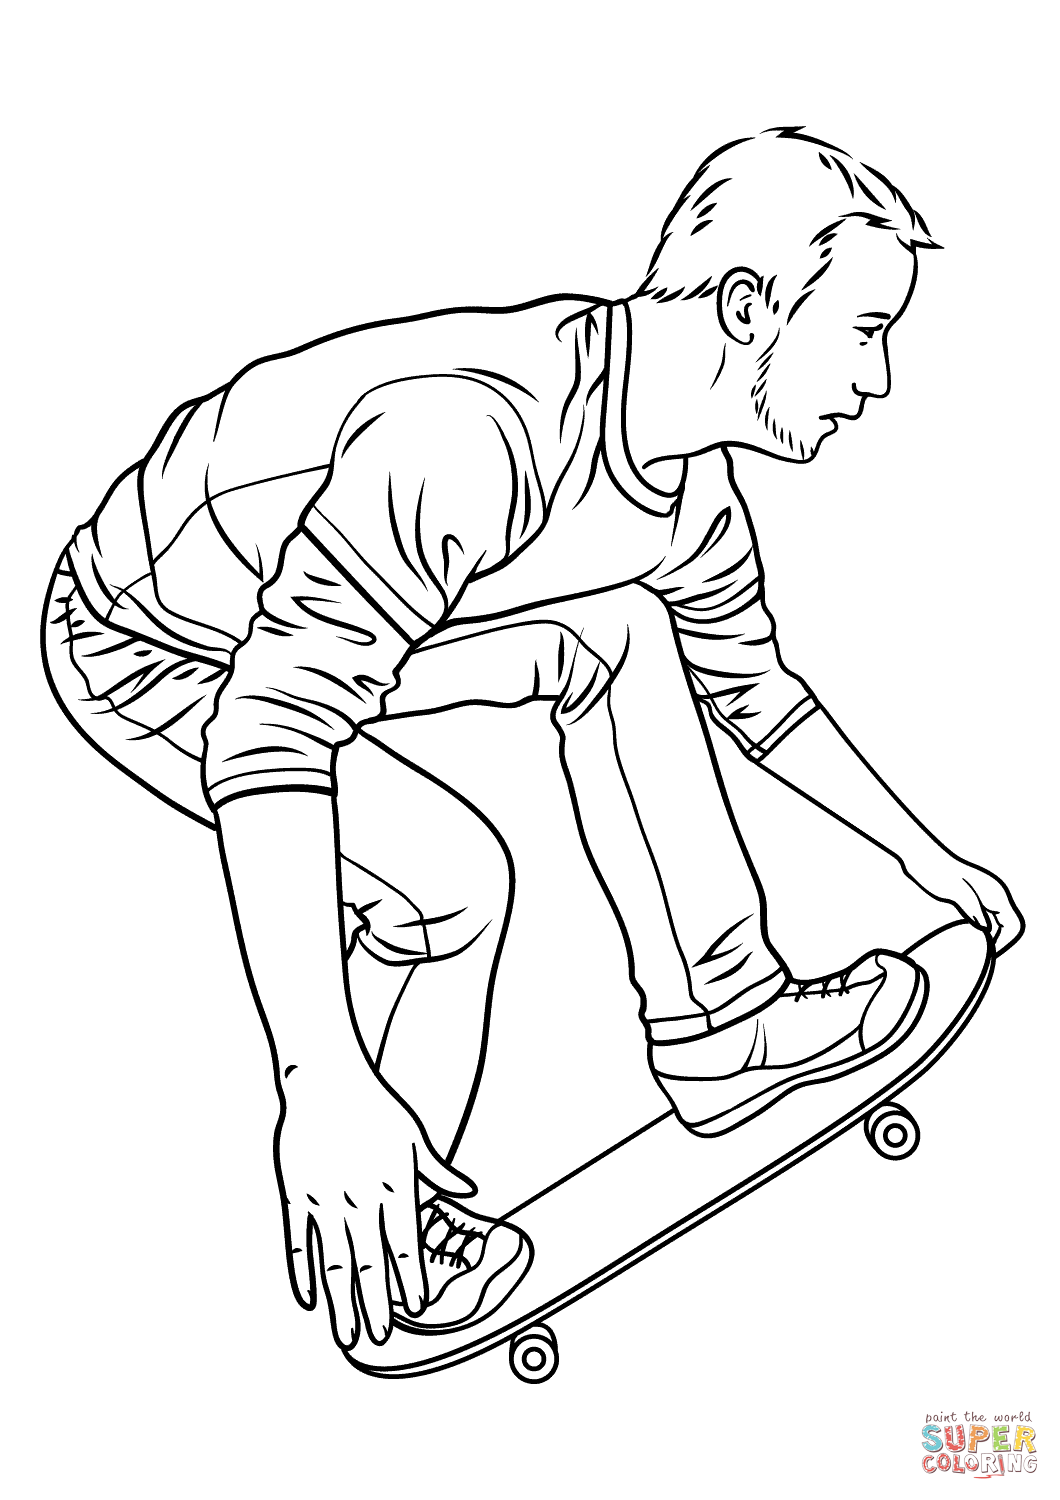 skateboard colouring pages skateboard coloring pages learn to coloring pages colouring skateboard